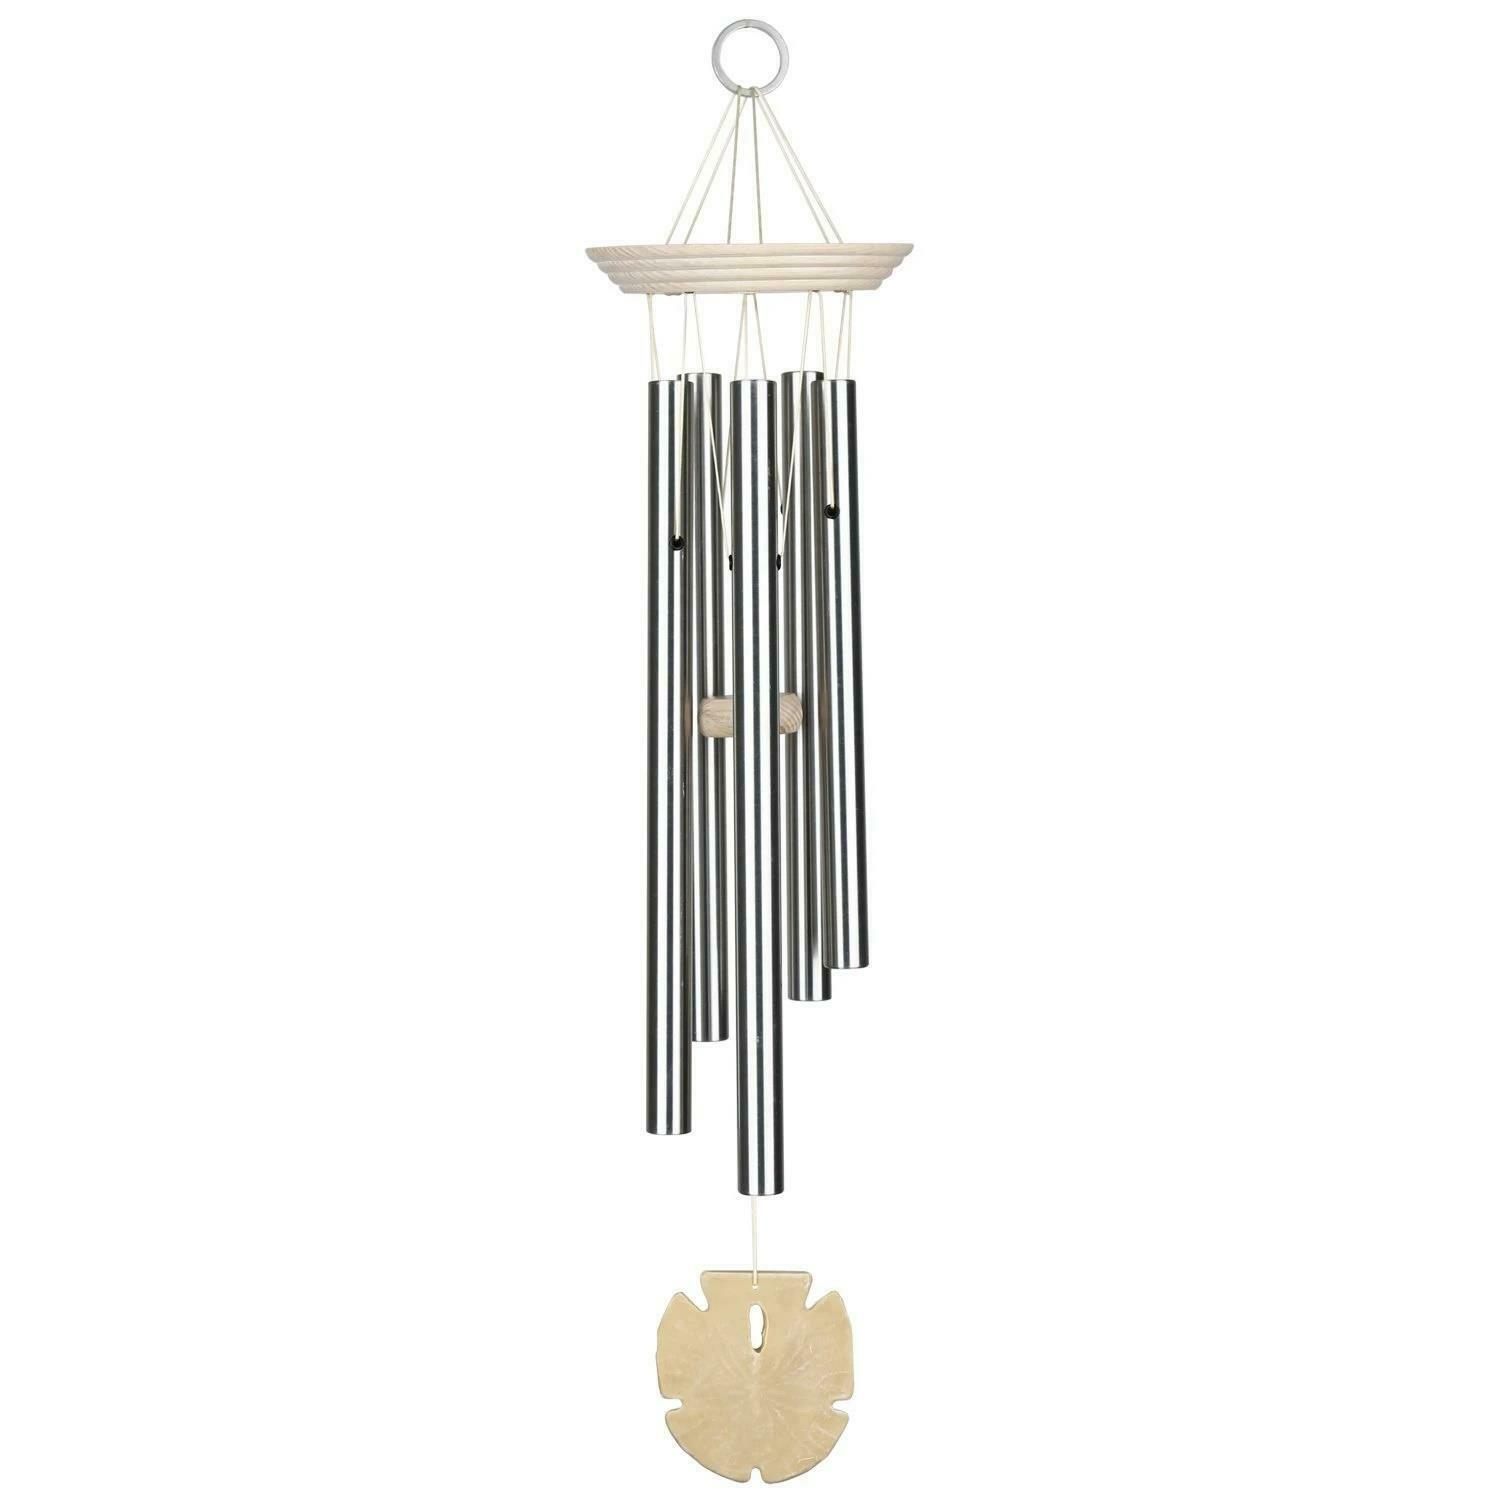 Woodstock Chimes Hanging Seashore Chime Sand Dollar Alloy Garden Wind Chime